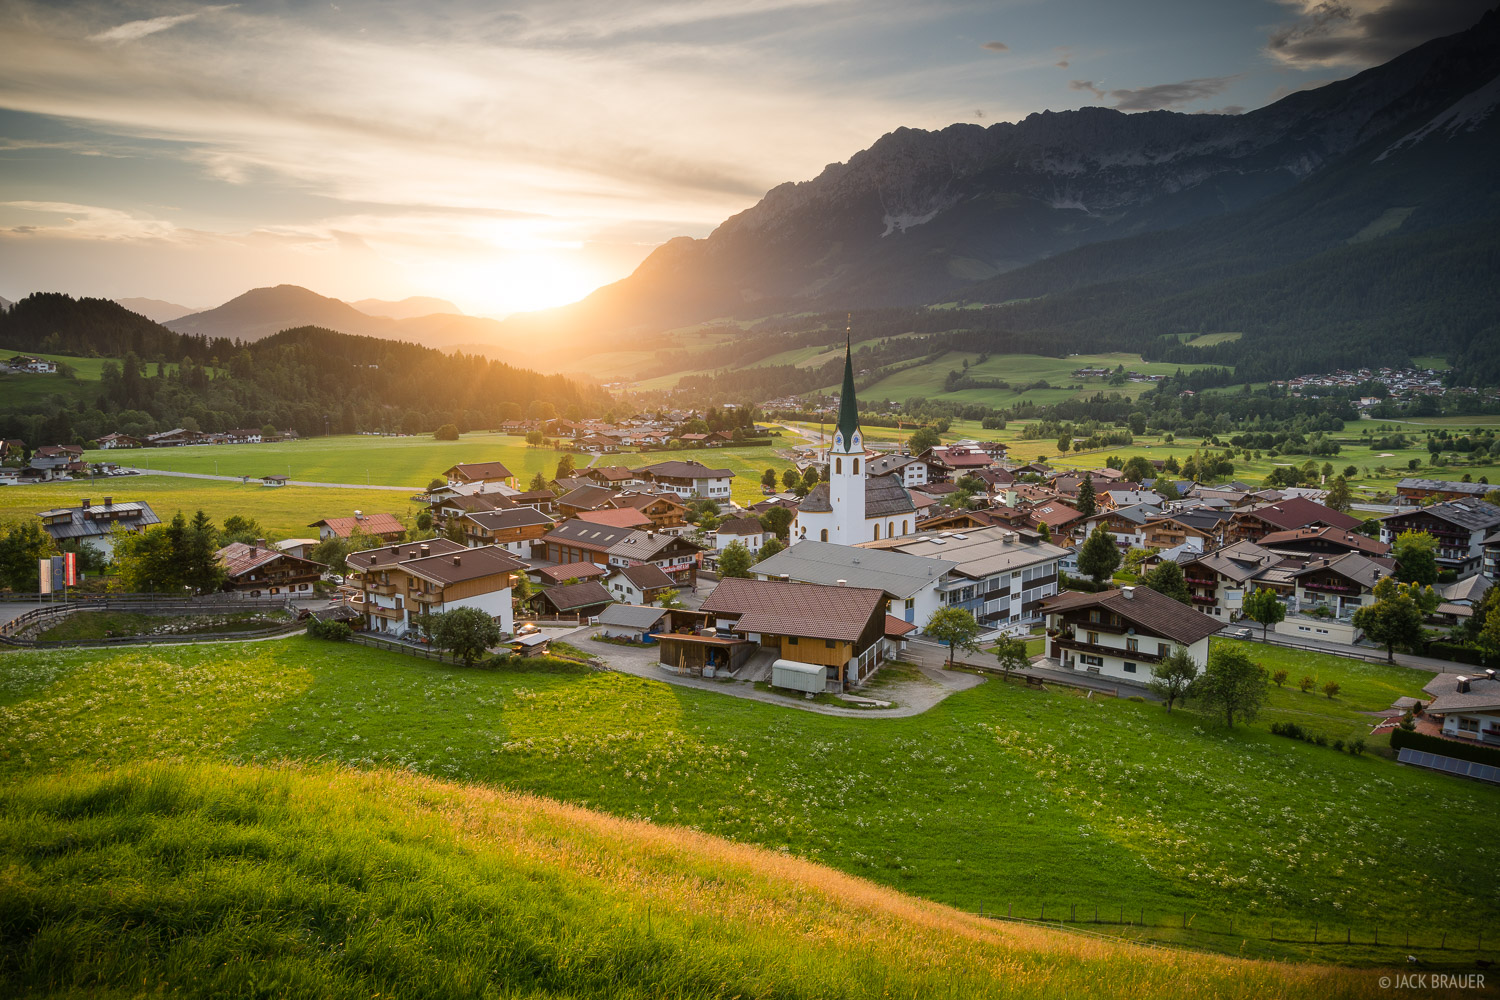 Austria, Ellmau, Kaisergebirge, Wilder Kaiser, sunset, photo